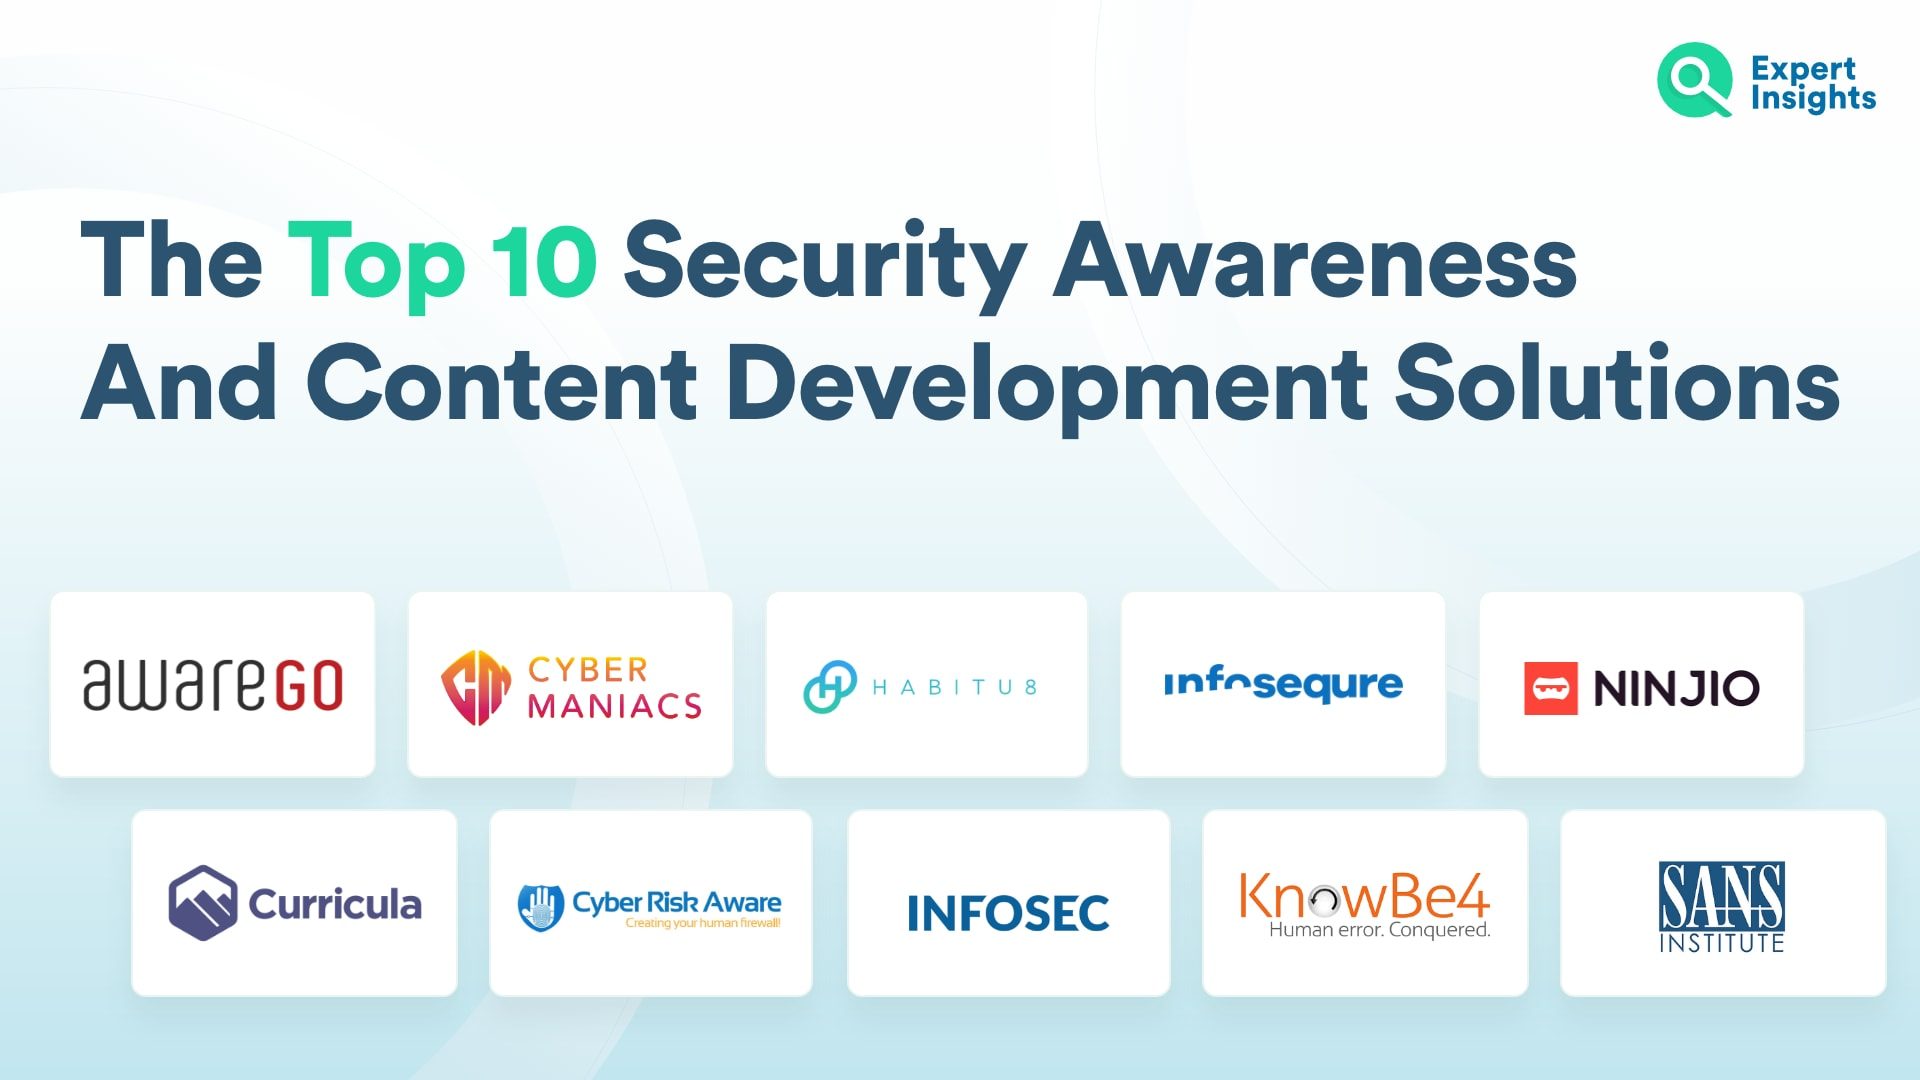 Top 10 Security Awareness Content And Development Solutions